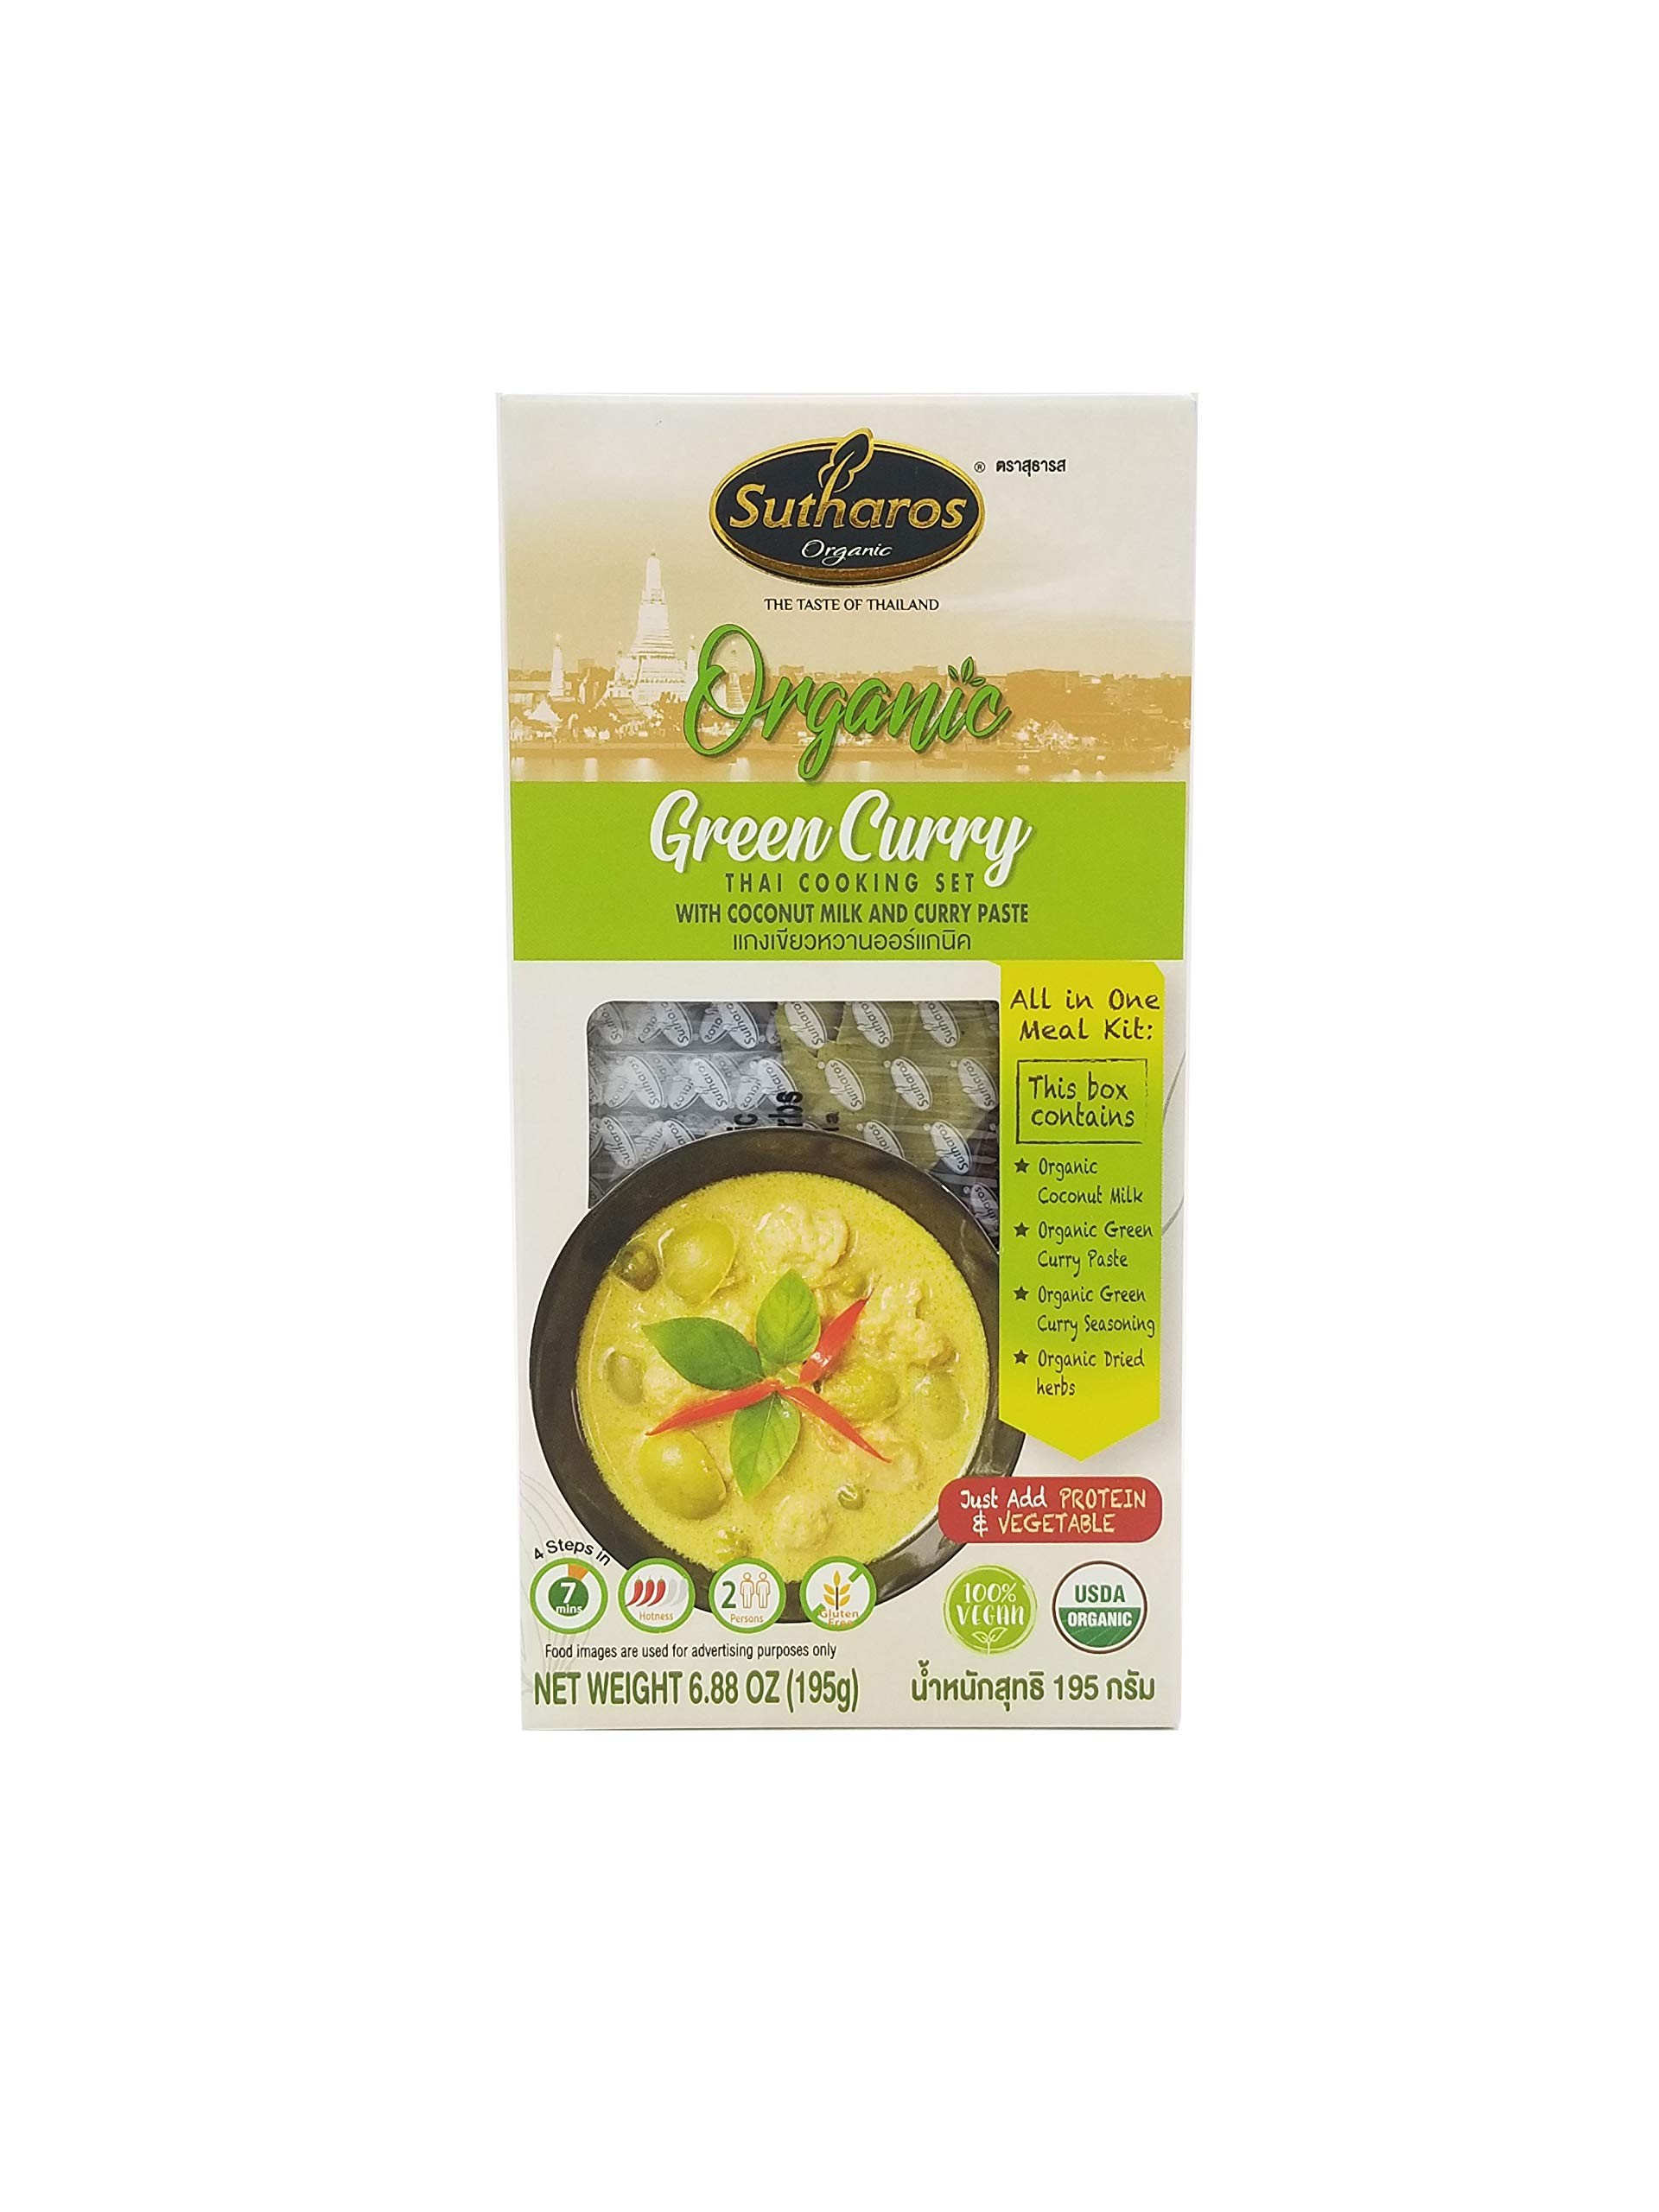 Sutharos Organic Thai Green Curry Meal Kit (3 Pack), 100% Vegan, Gluten-Free, Comes With Curry Paste, Coconut Milk, Herbs, and Spices